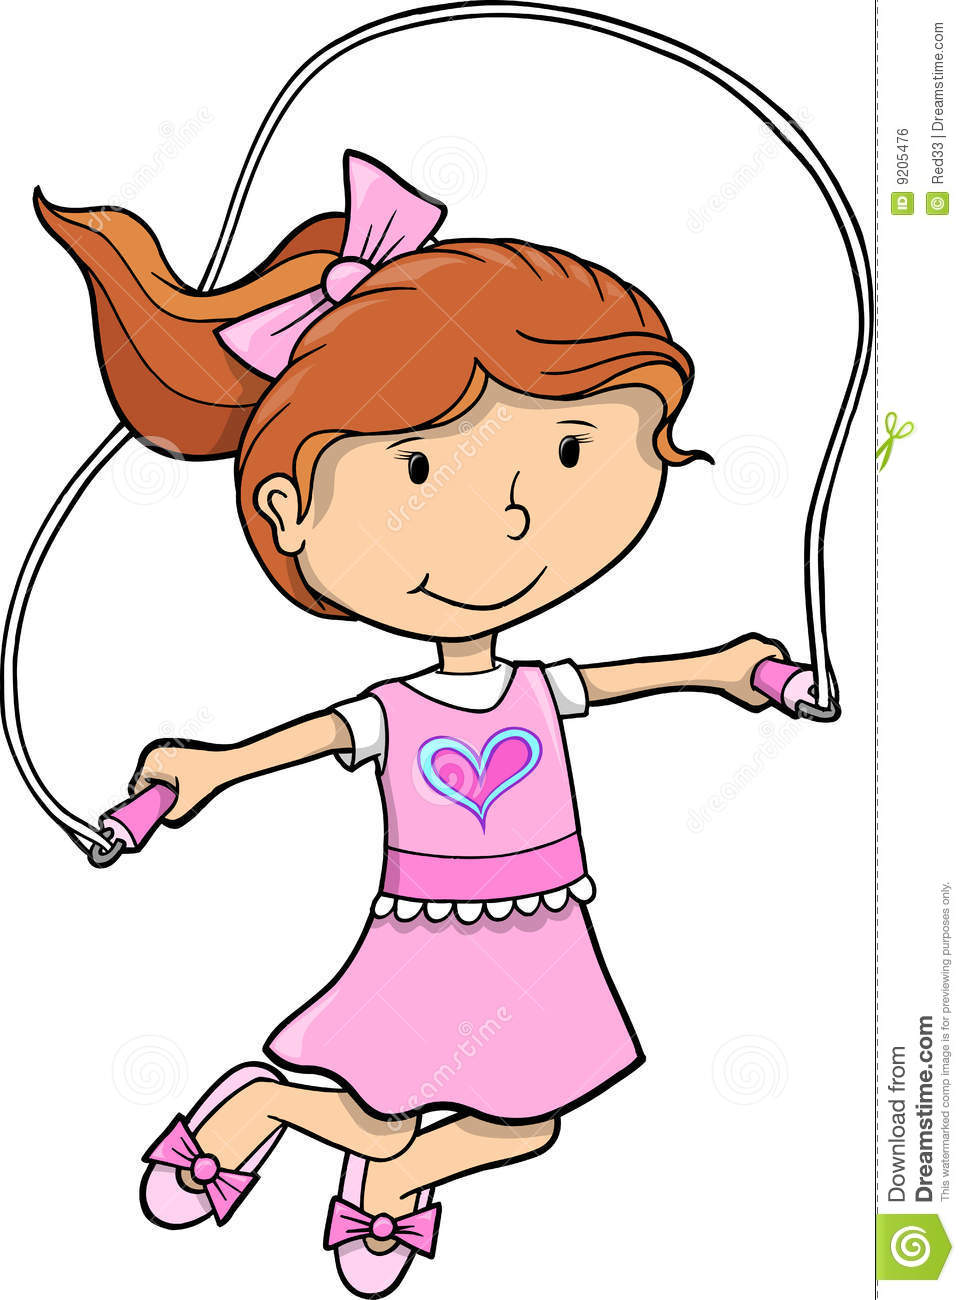 Jump Rope Girl Vector Royalty Free Stock Image   Image  9205476